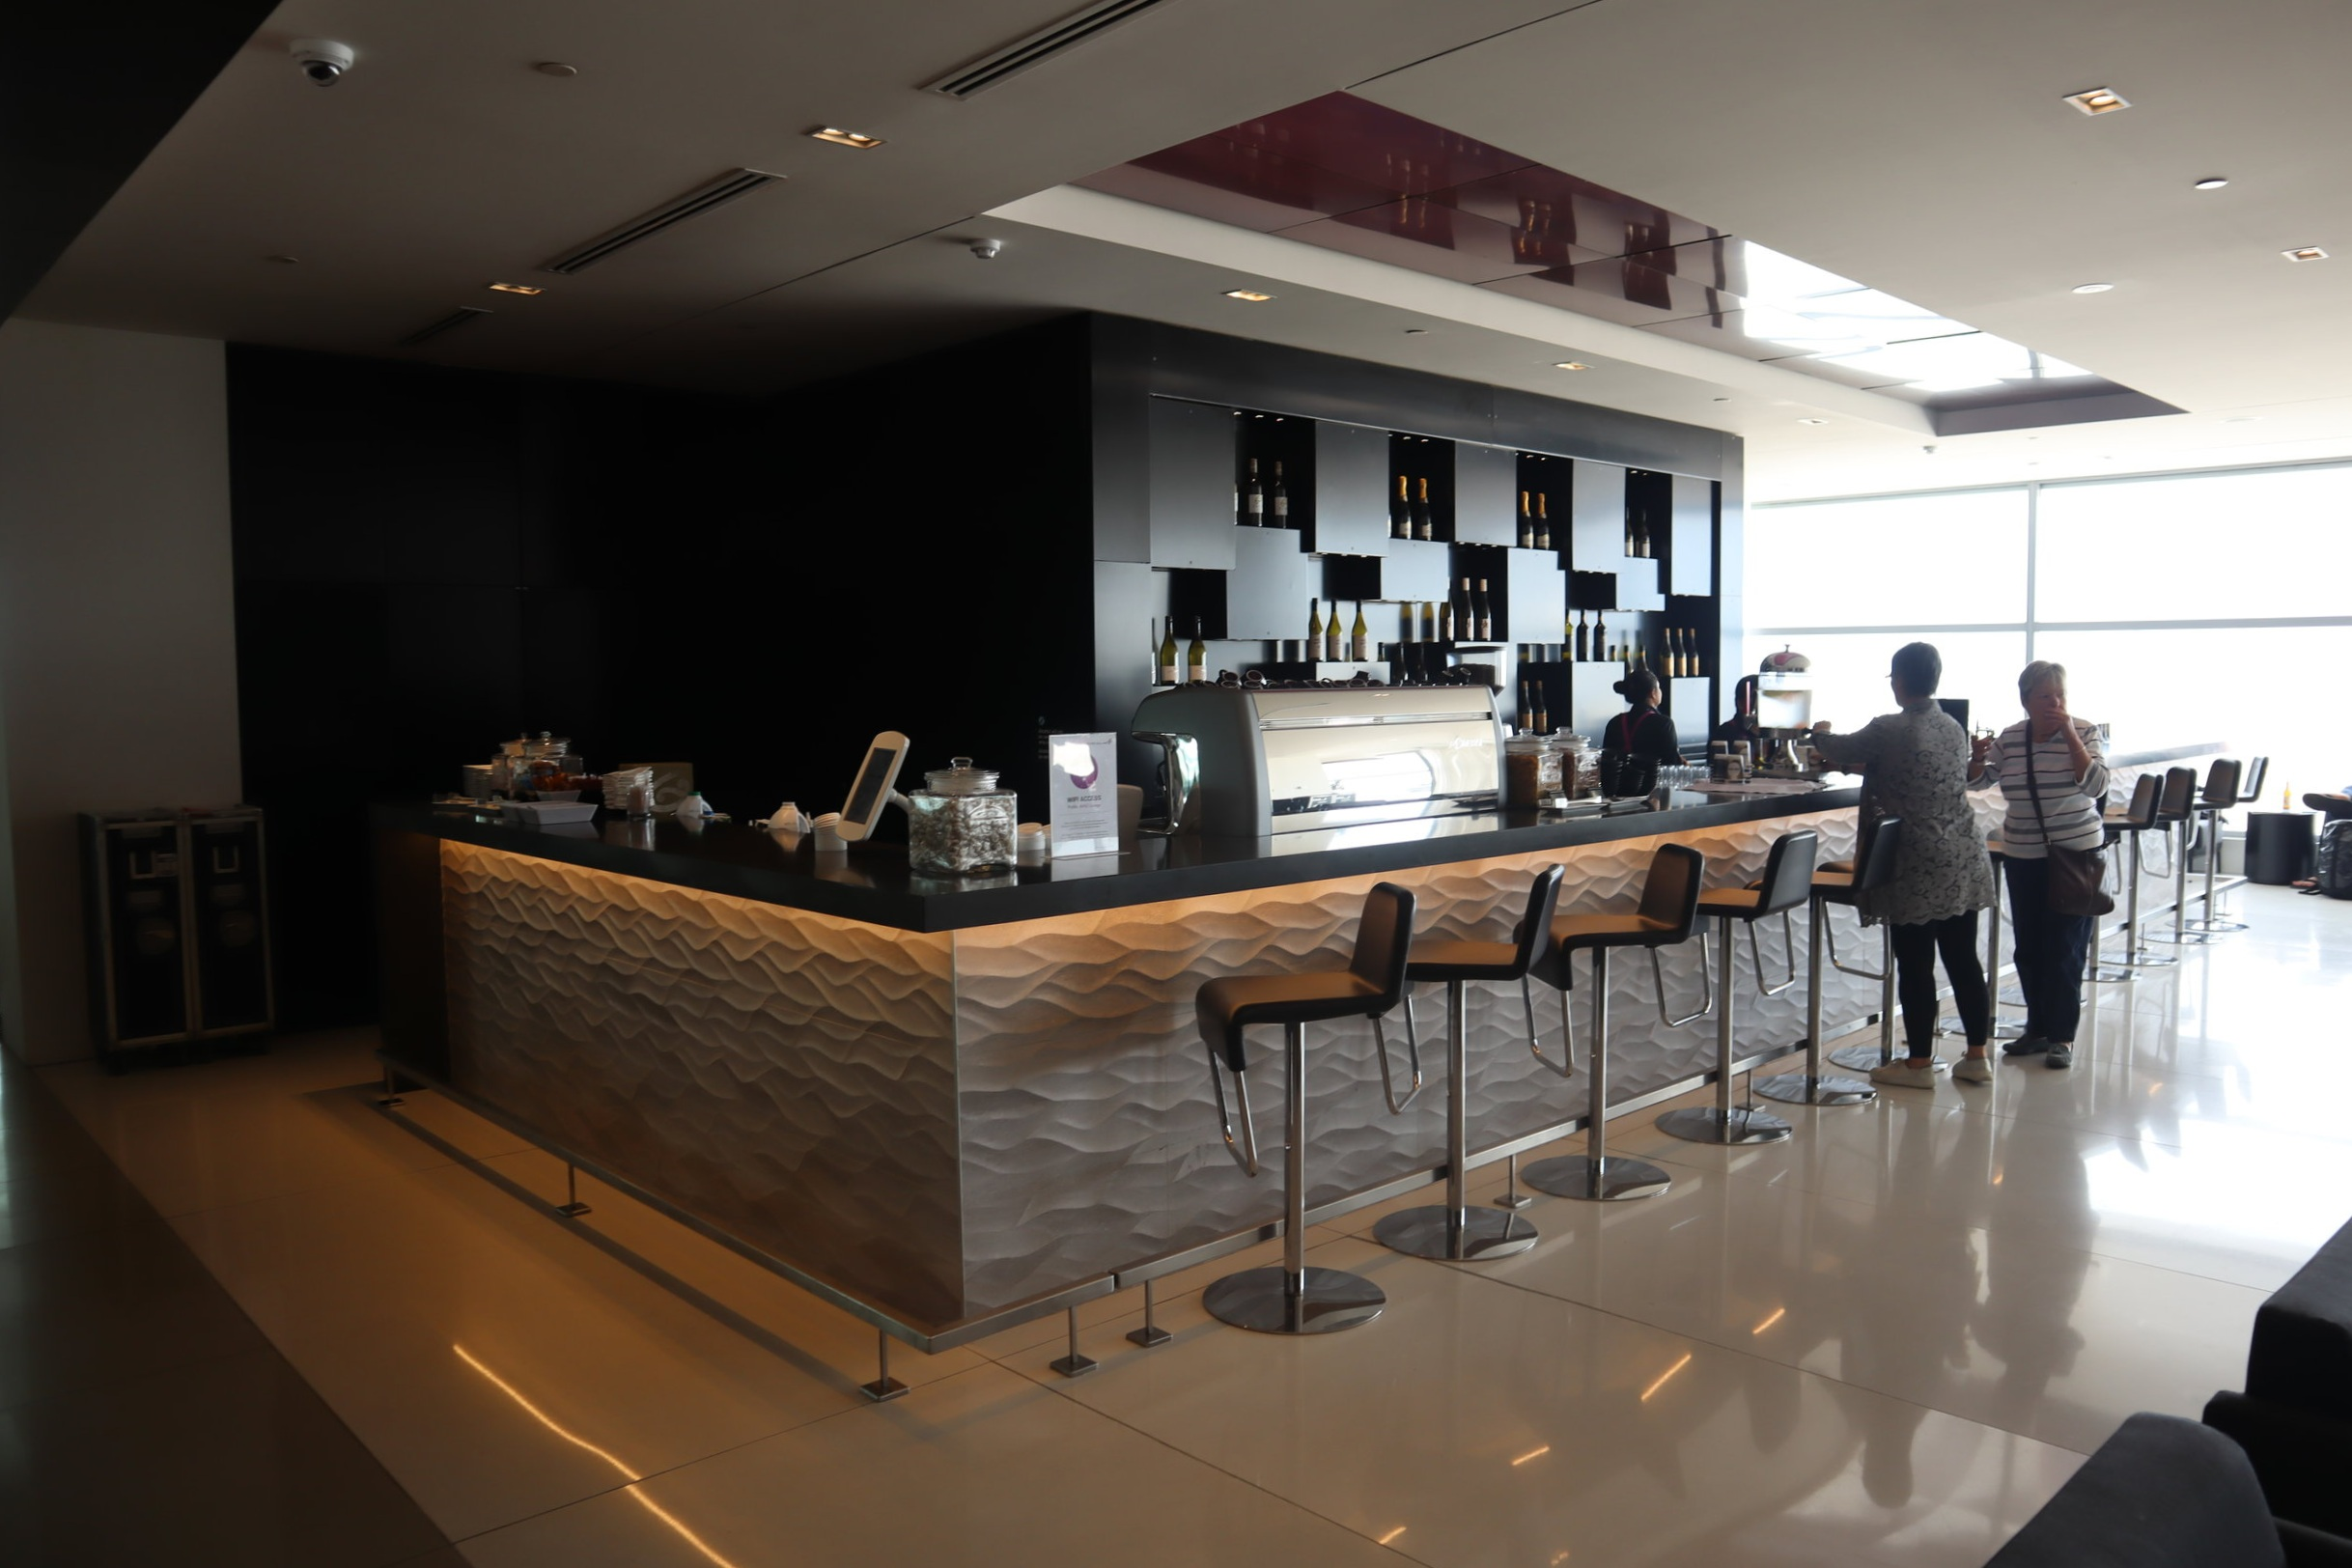 Air New Zealand Lounge Auckland – Cafe and bar